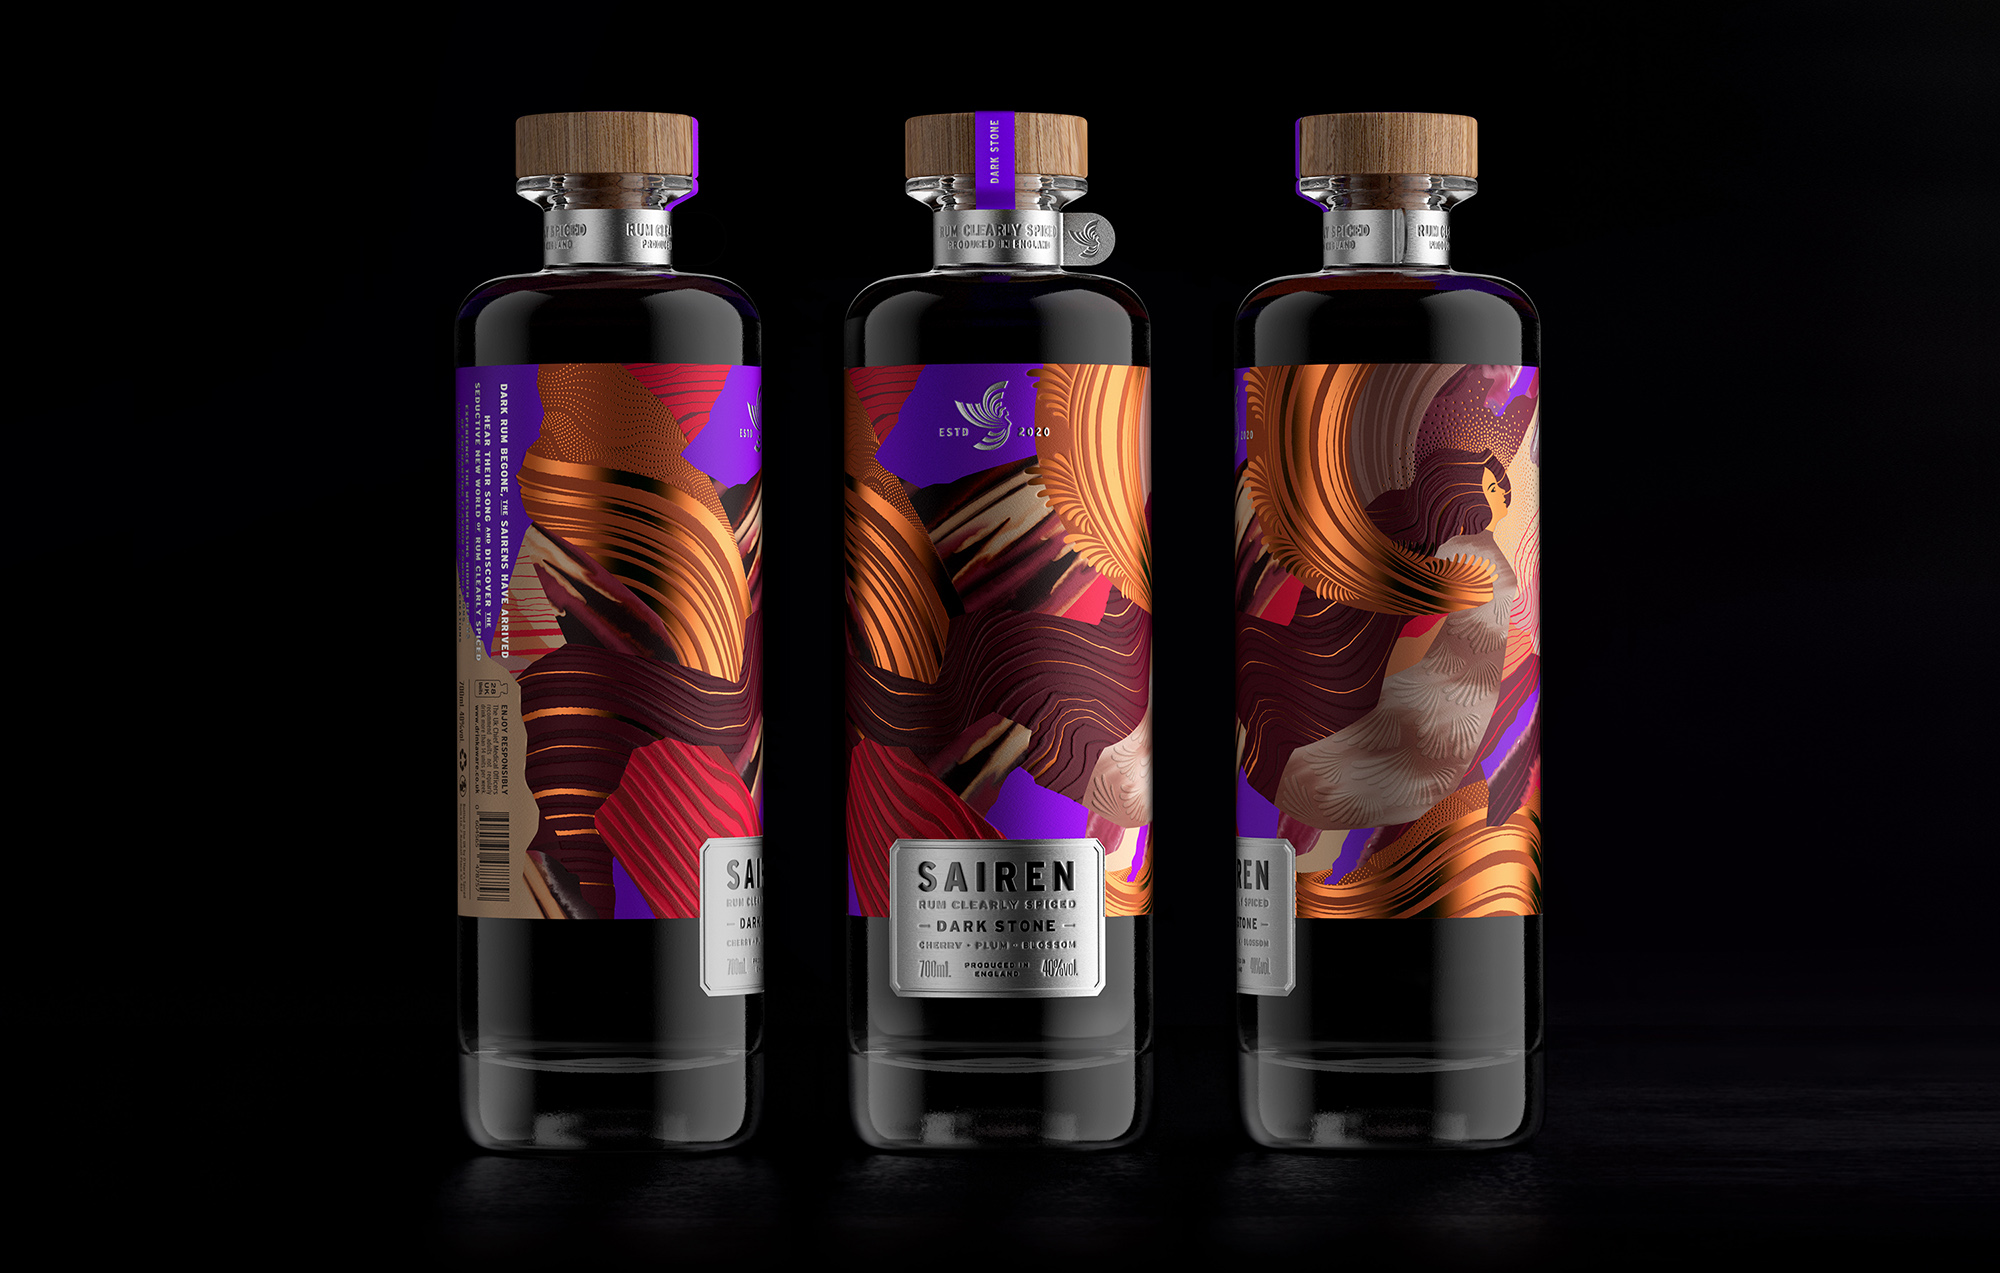 Sairen Rum Clearly Spiced Packaging Design by Símil Design